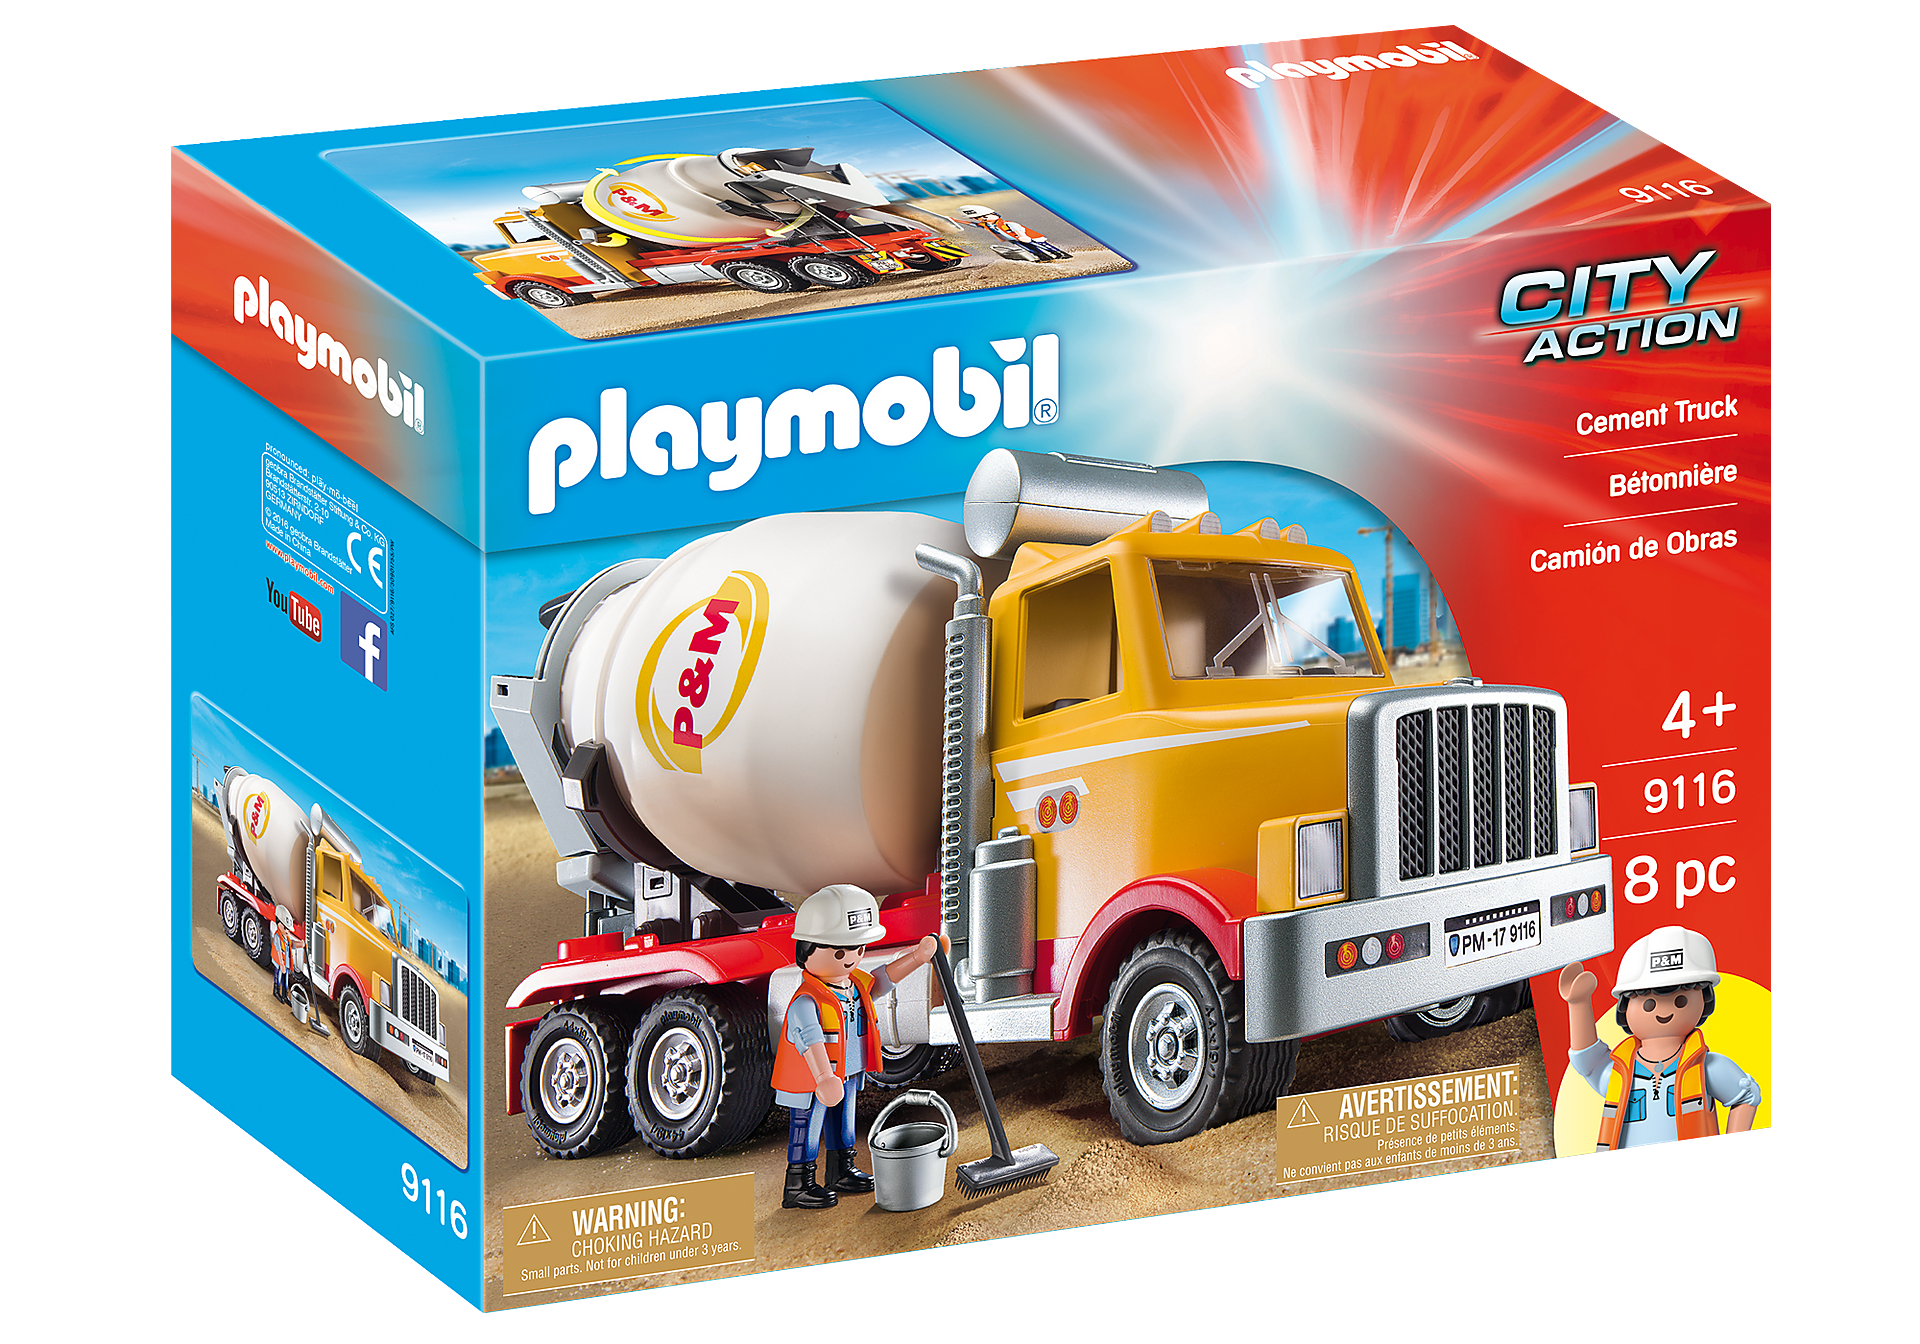 http://media.playmobil.com/i/playmobil/9116_product_box_front/Cement Truck